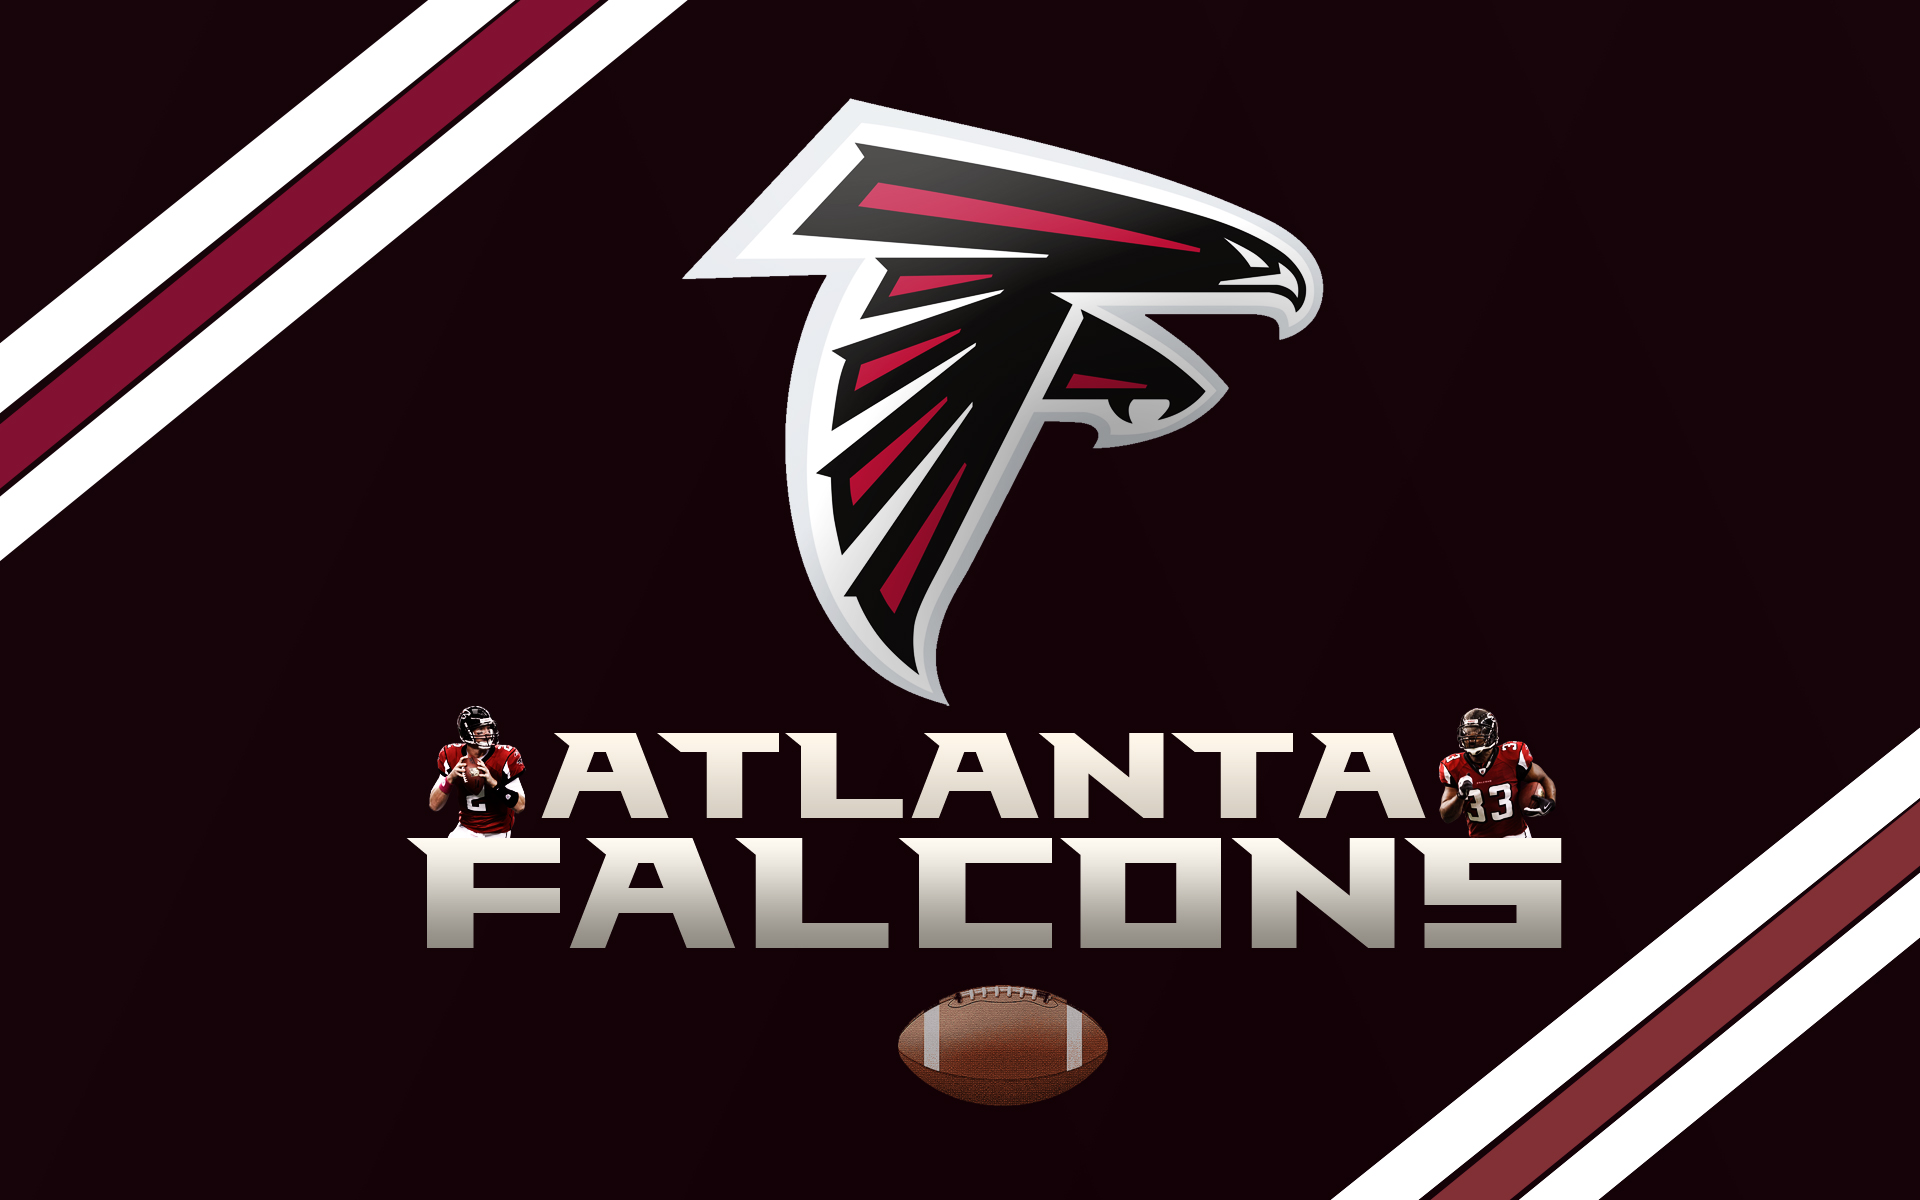 Atlanta Falcons Desktop Wallpapers: 8 HD Atlanta Falcons Wallpapers